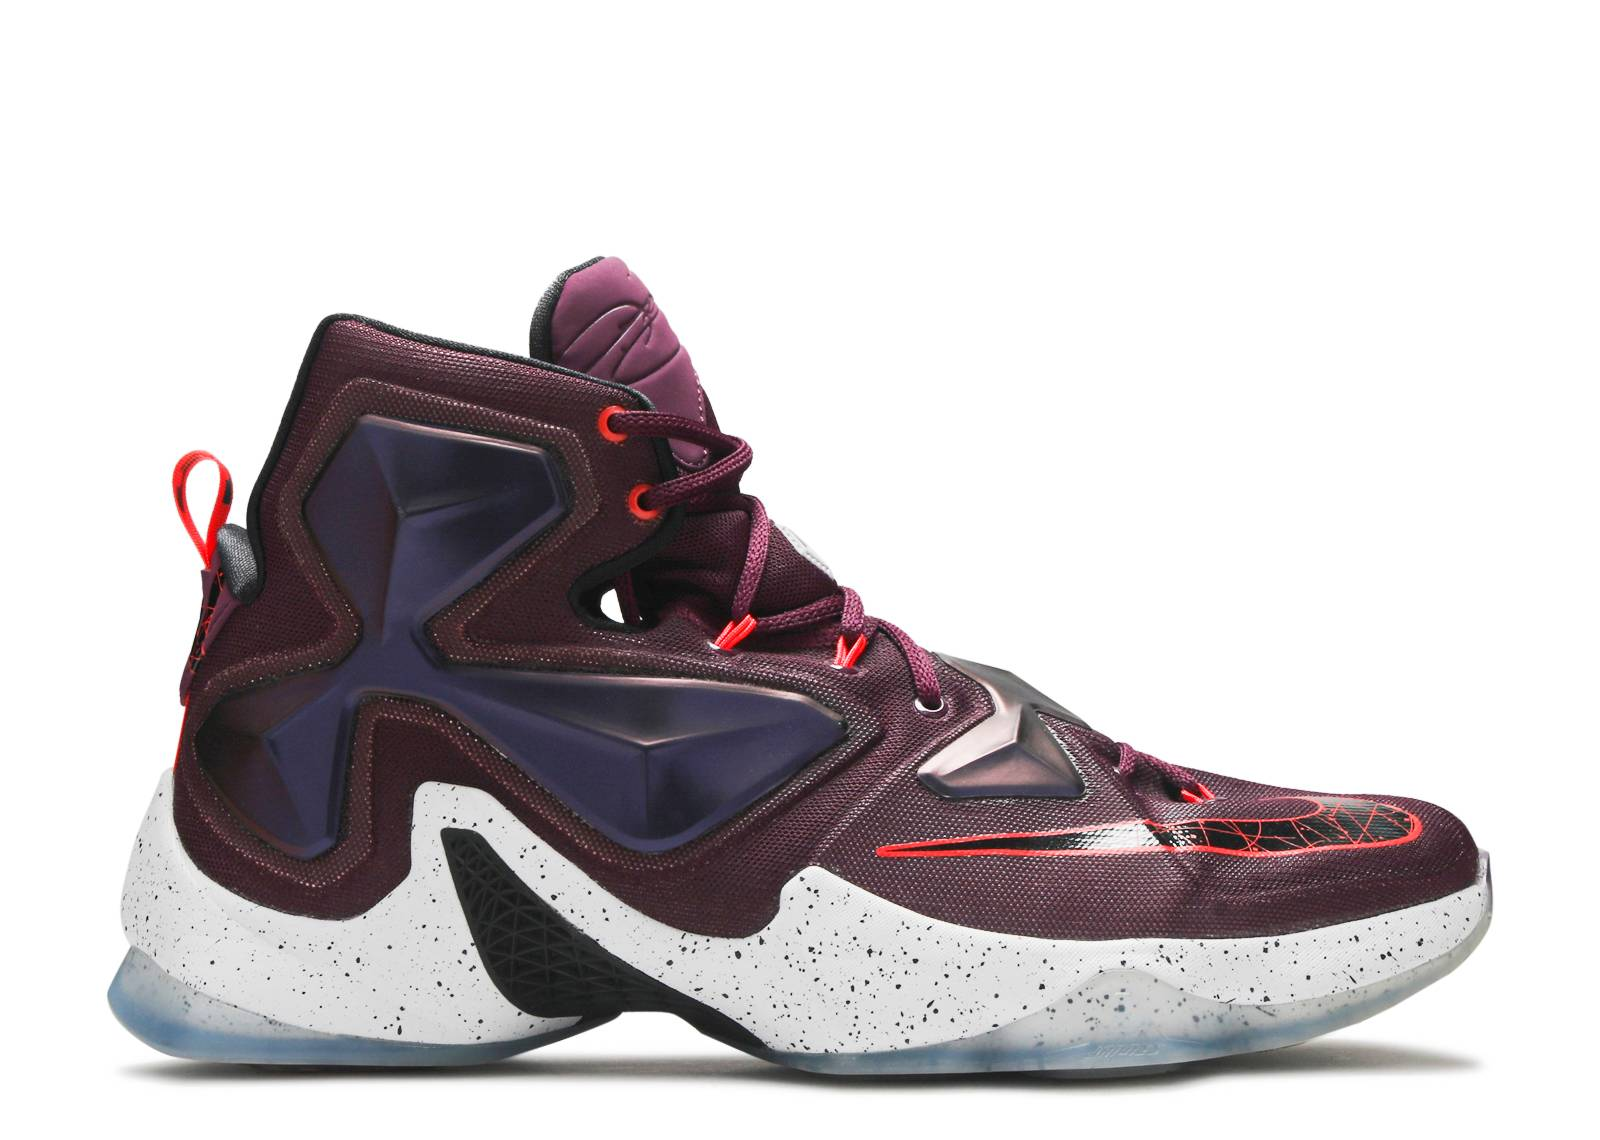 48be626250a Lebron 13